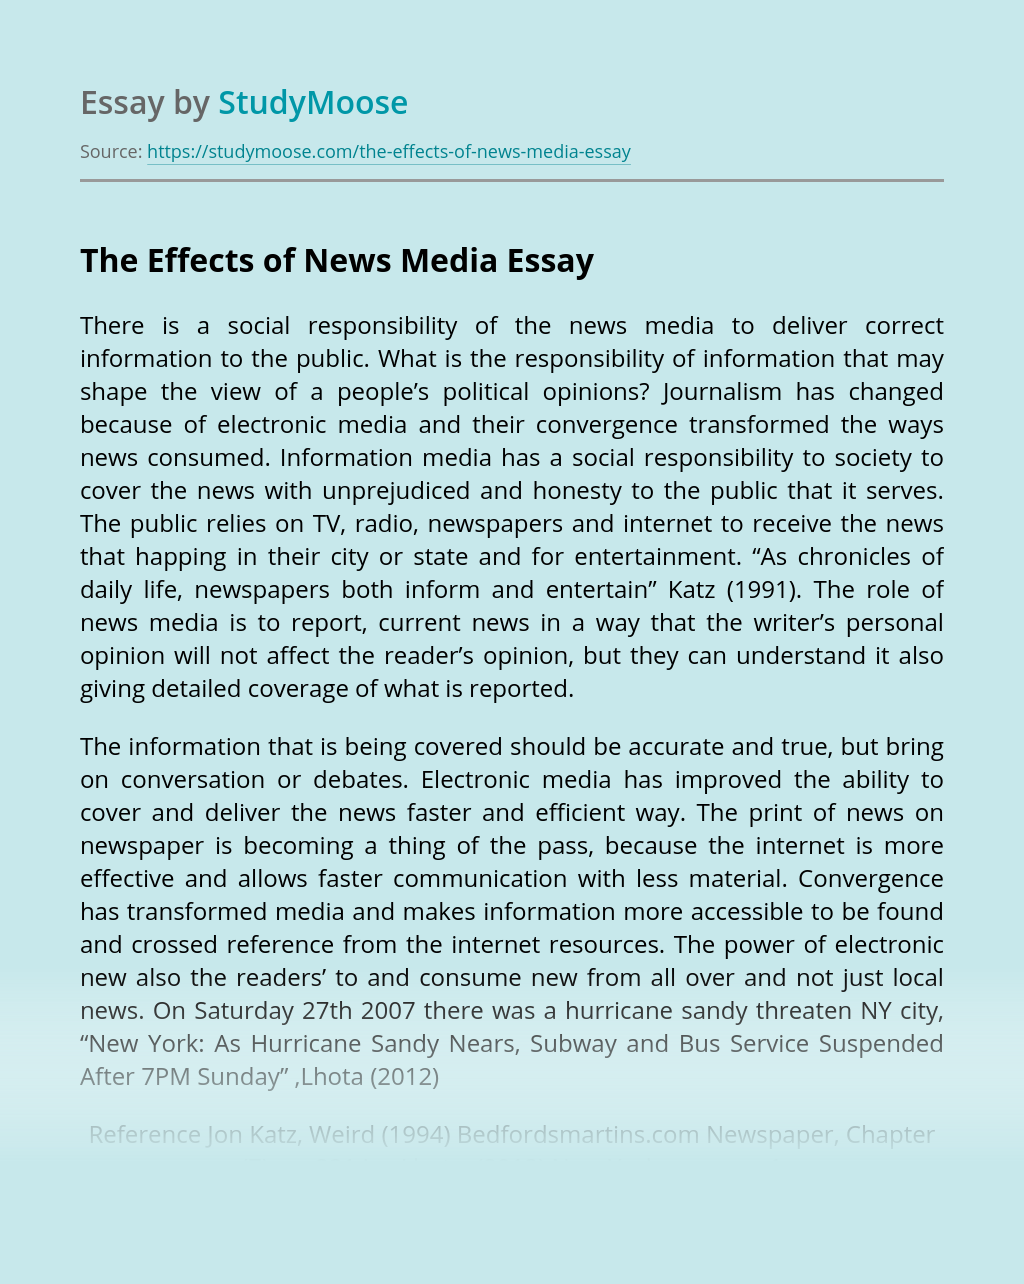 The Effects of News Media